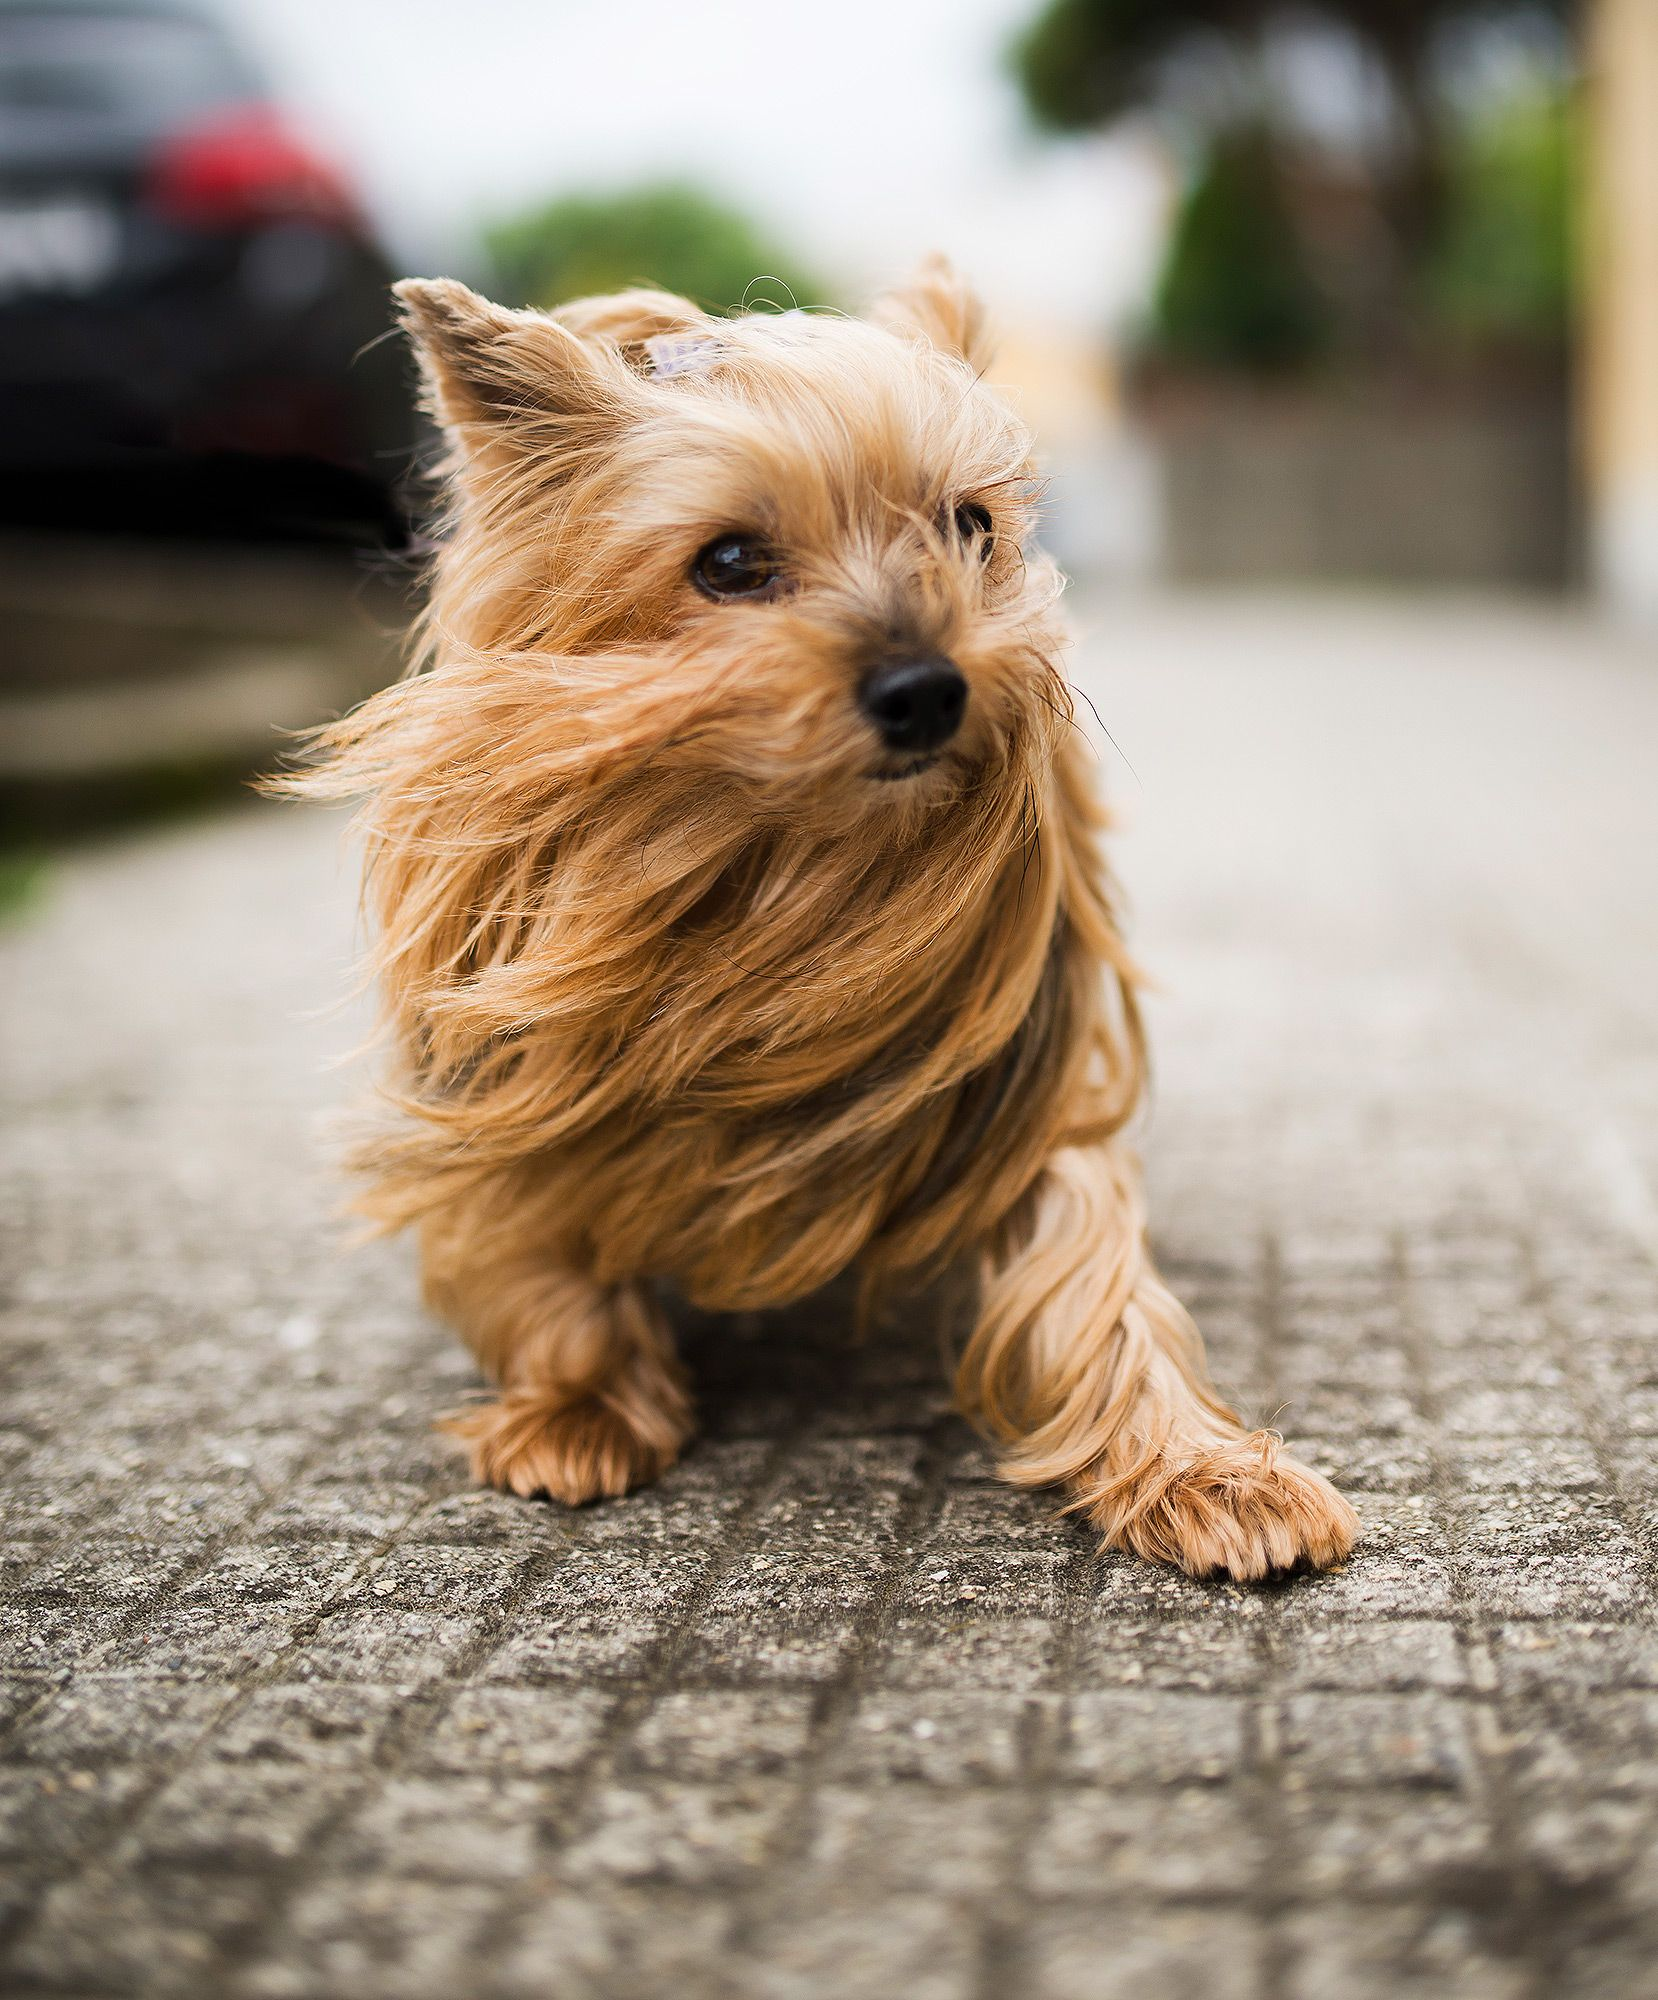 Hold On To Your Pooch Cleveland Issues Small Dog Warning Due To 50 Mph Winds Yorkshire Terrier Puppies Yorkie Terrier Yorkshire Terrier